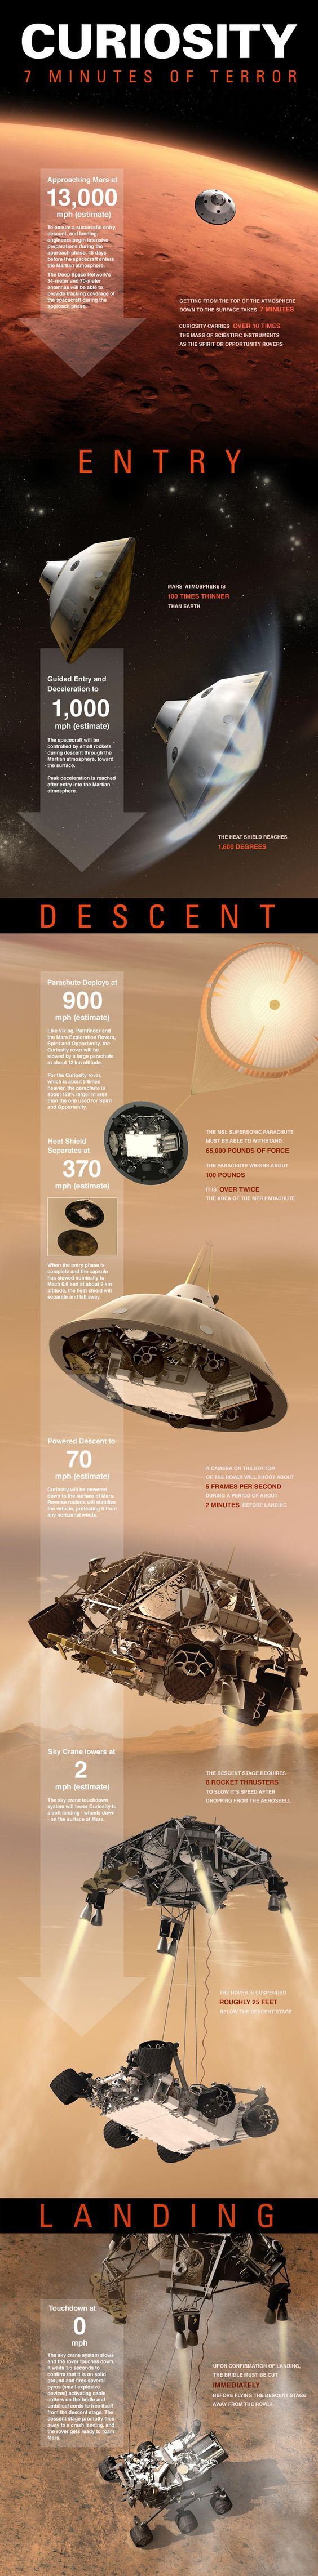 """all about """"Curiosity"""" rover - Infographic"""